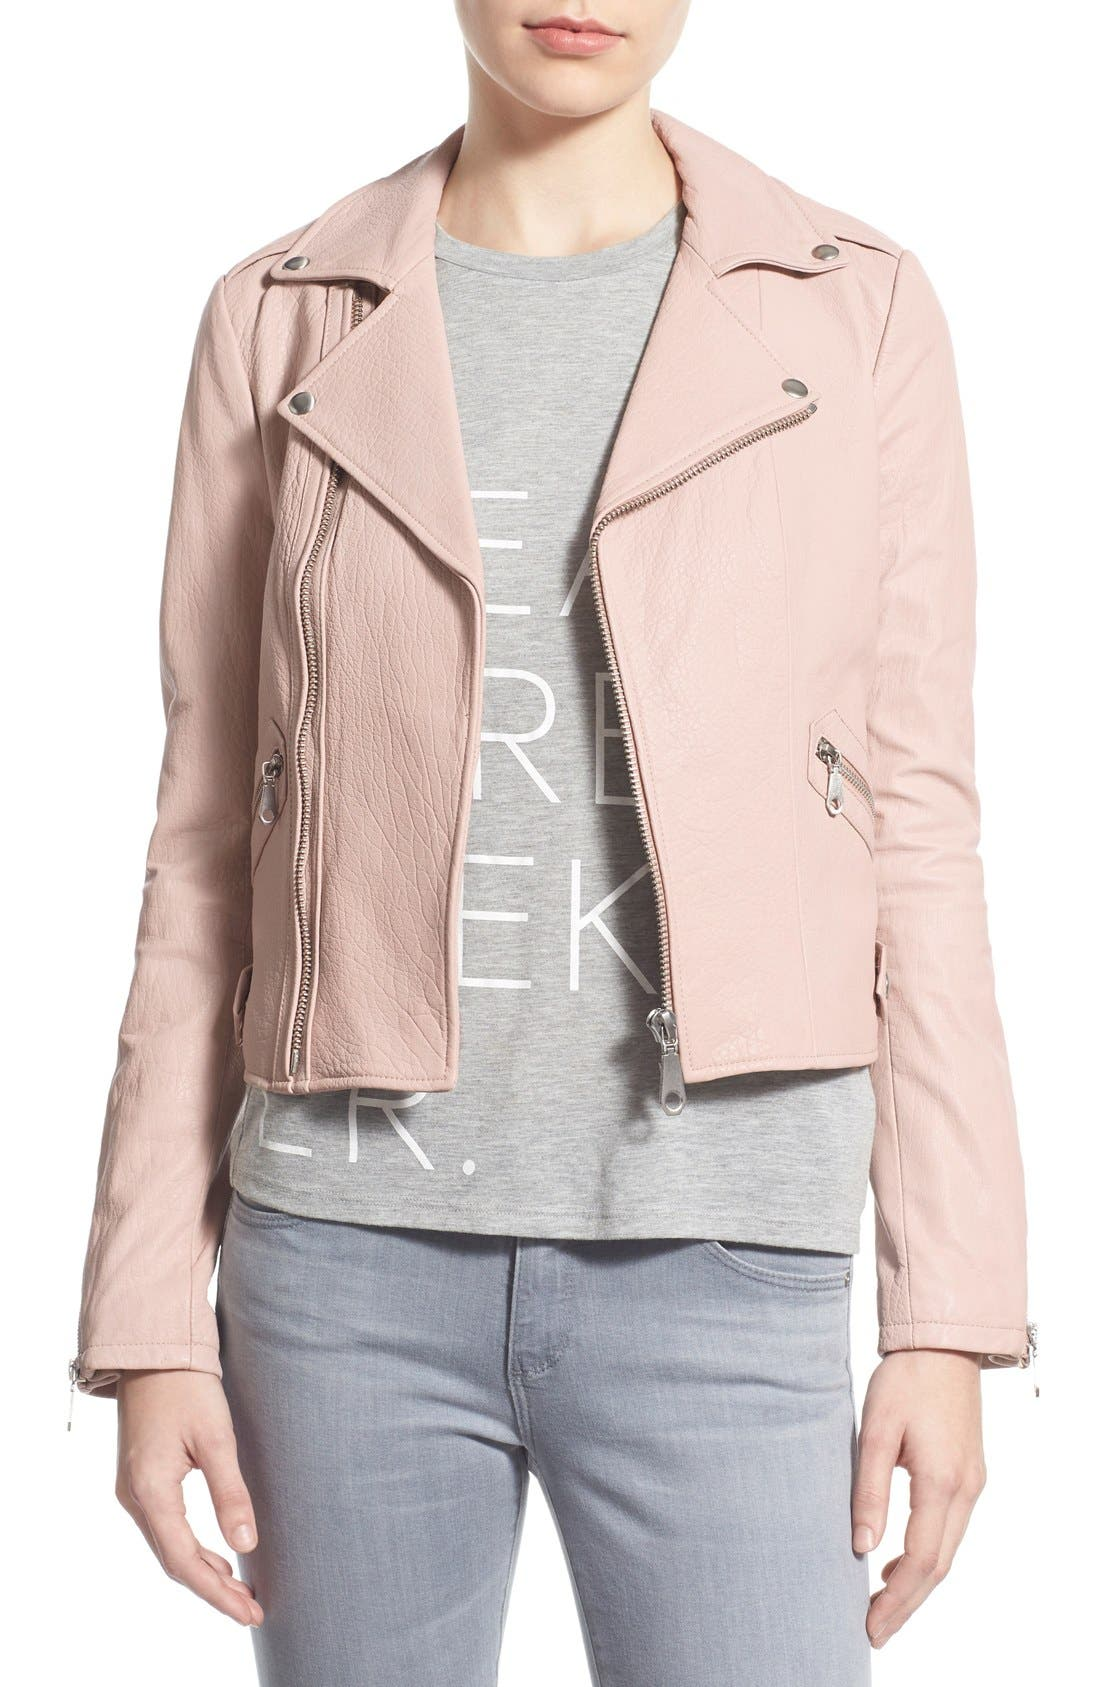 Pebble Leather Jacket,                         Main,                         color, Nude Pink